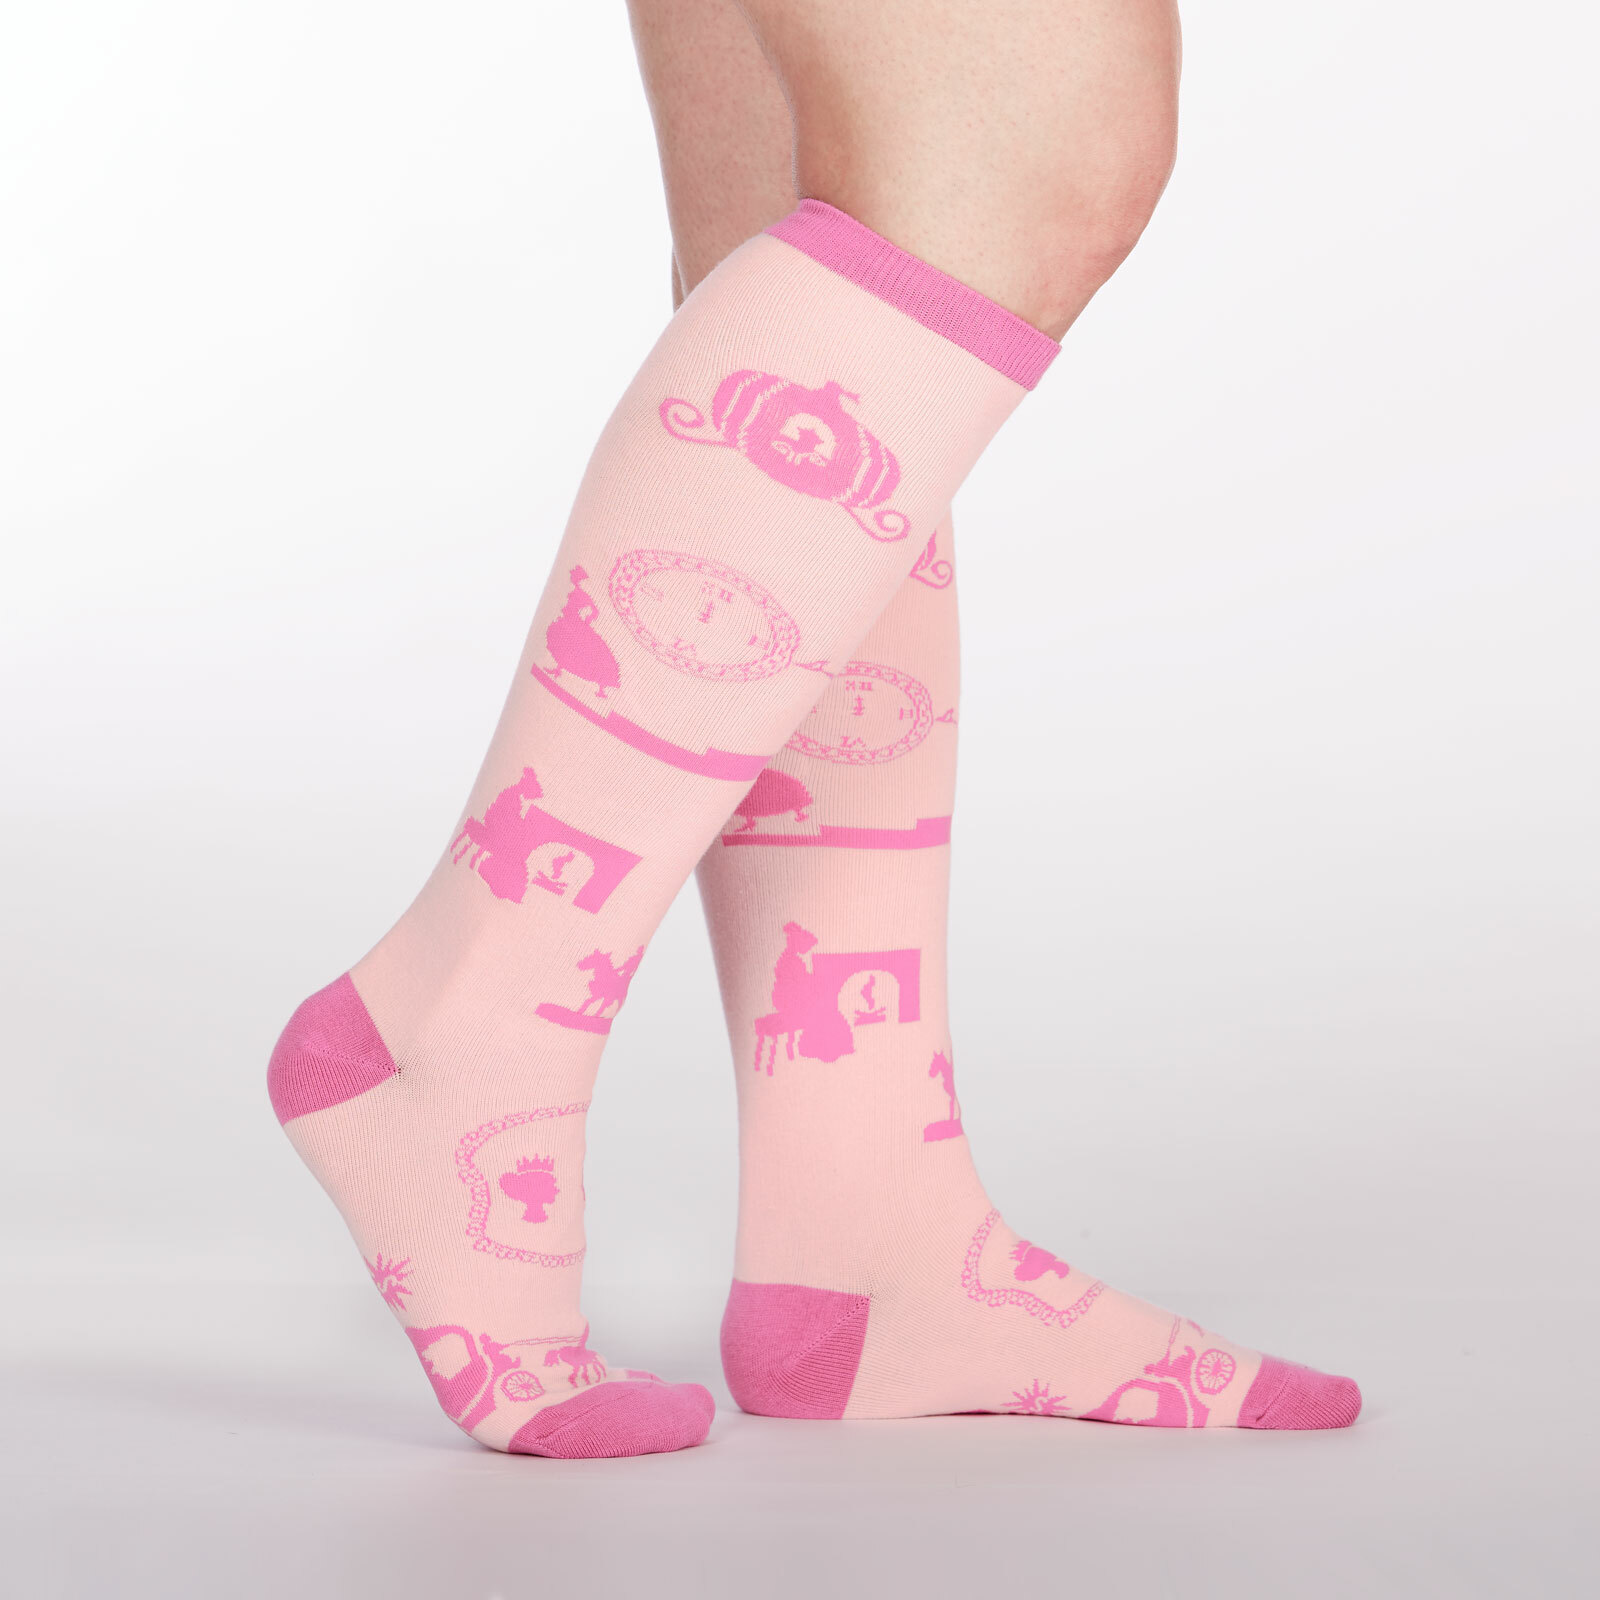 model side view of Happily Ever After - Fairy Tale Knee High Socks Pink - Women's